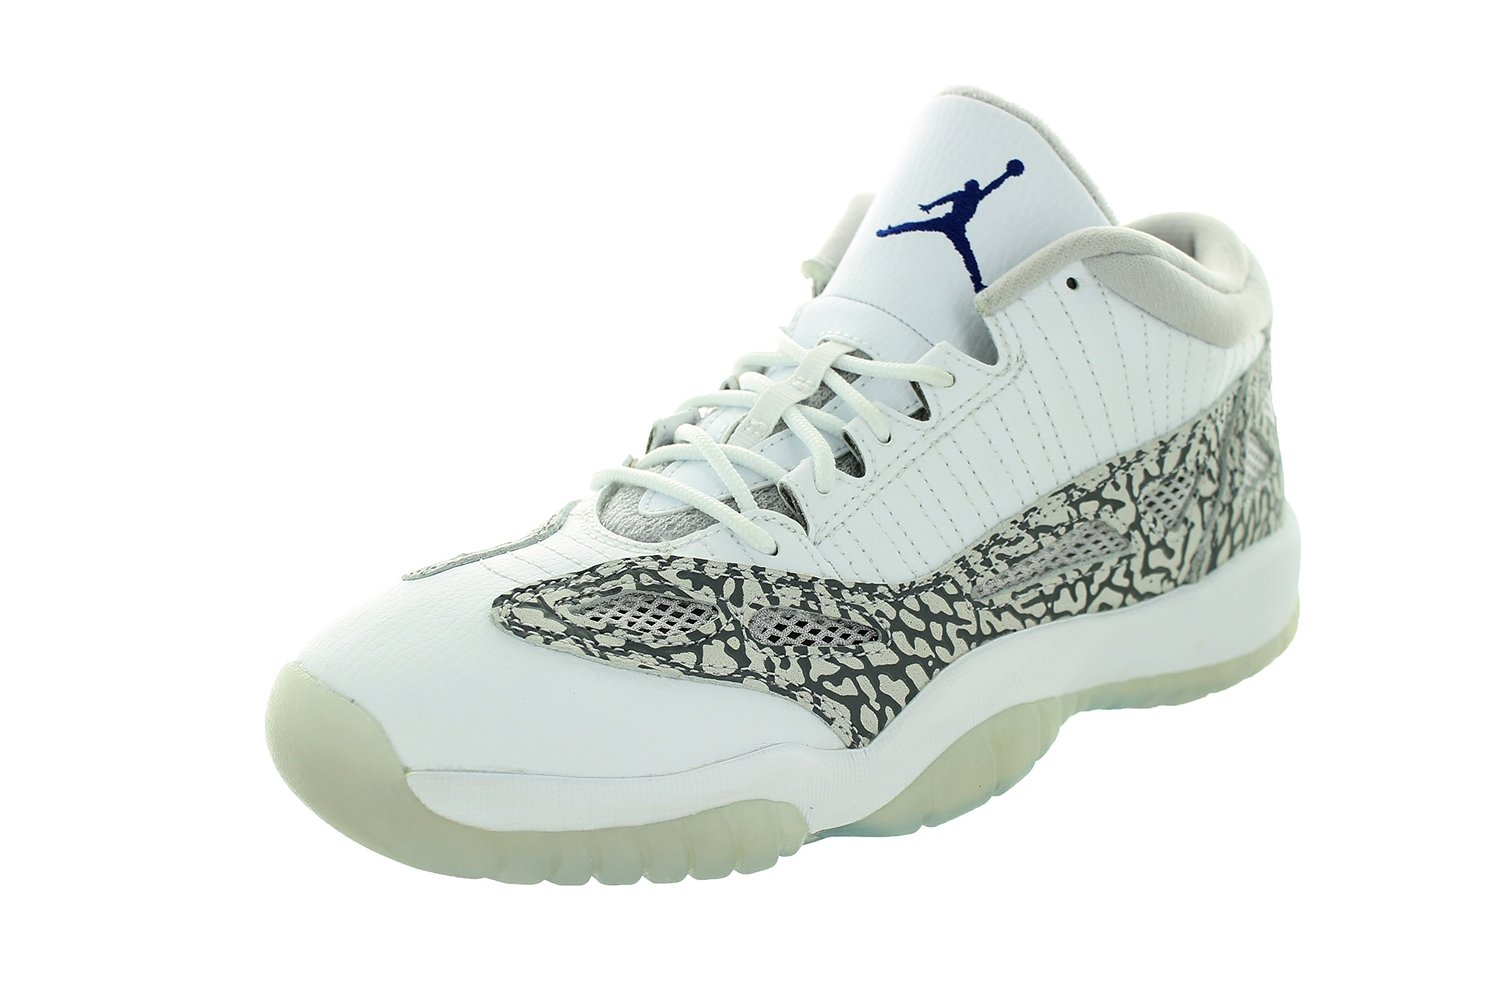 best website 98724 6488a  768873-102  AIR JORDAN AJ 11 RETRO LOW BG GS SNEAKERS AIR JORDANWHITE